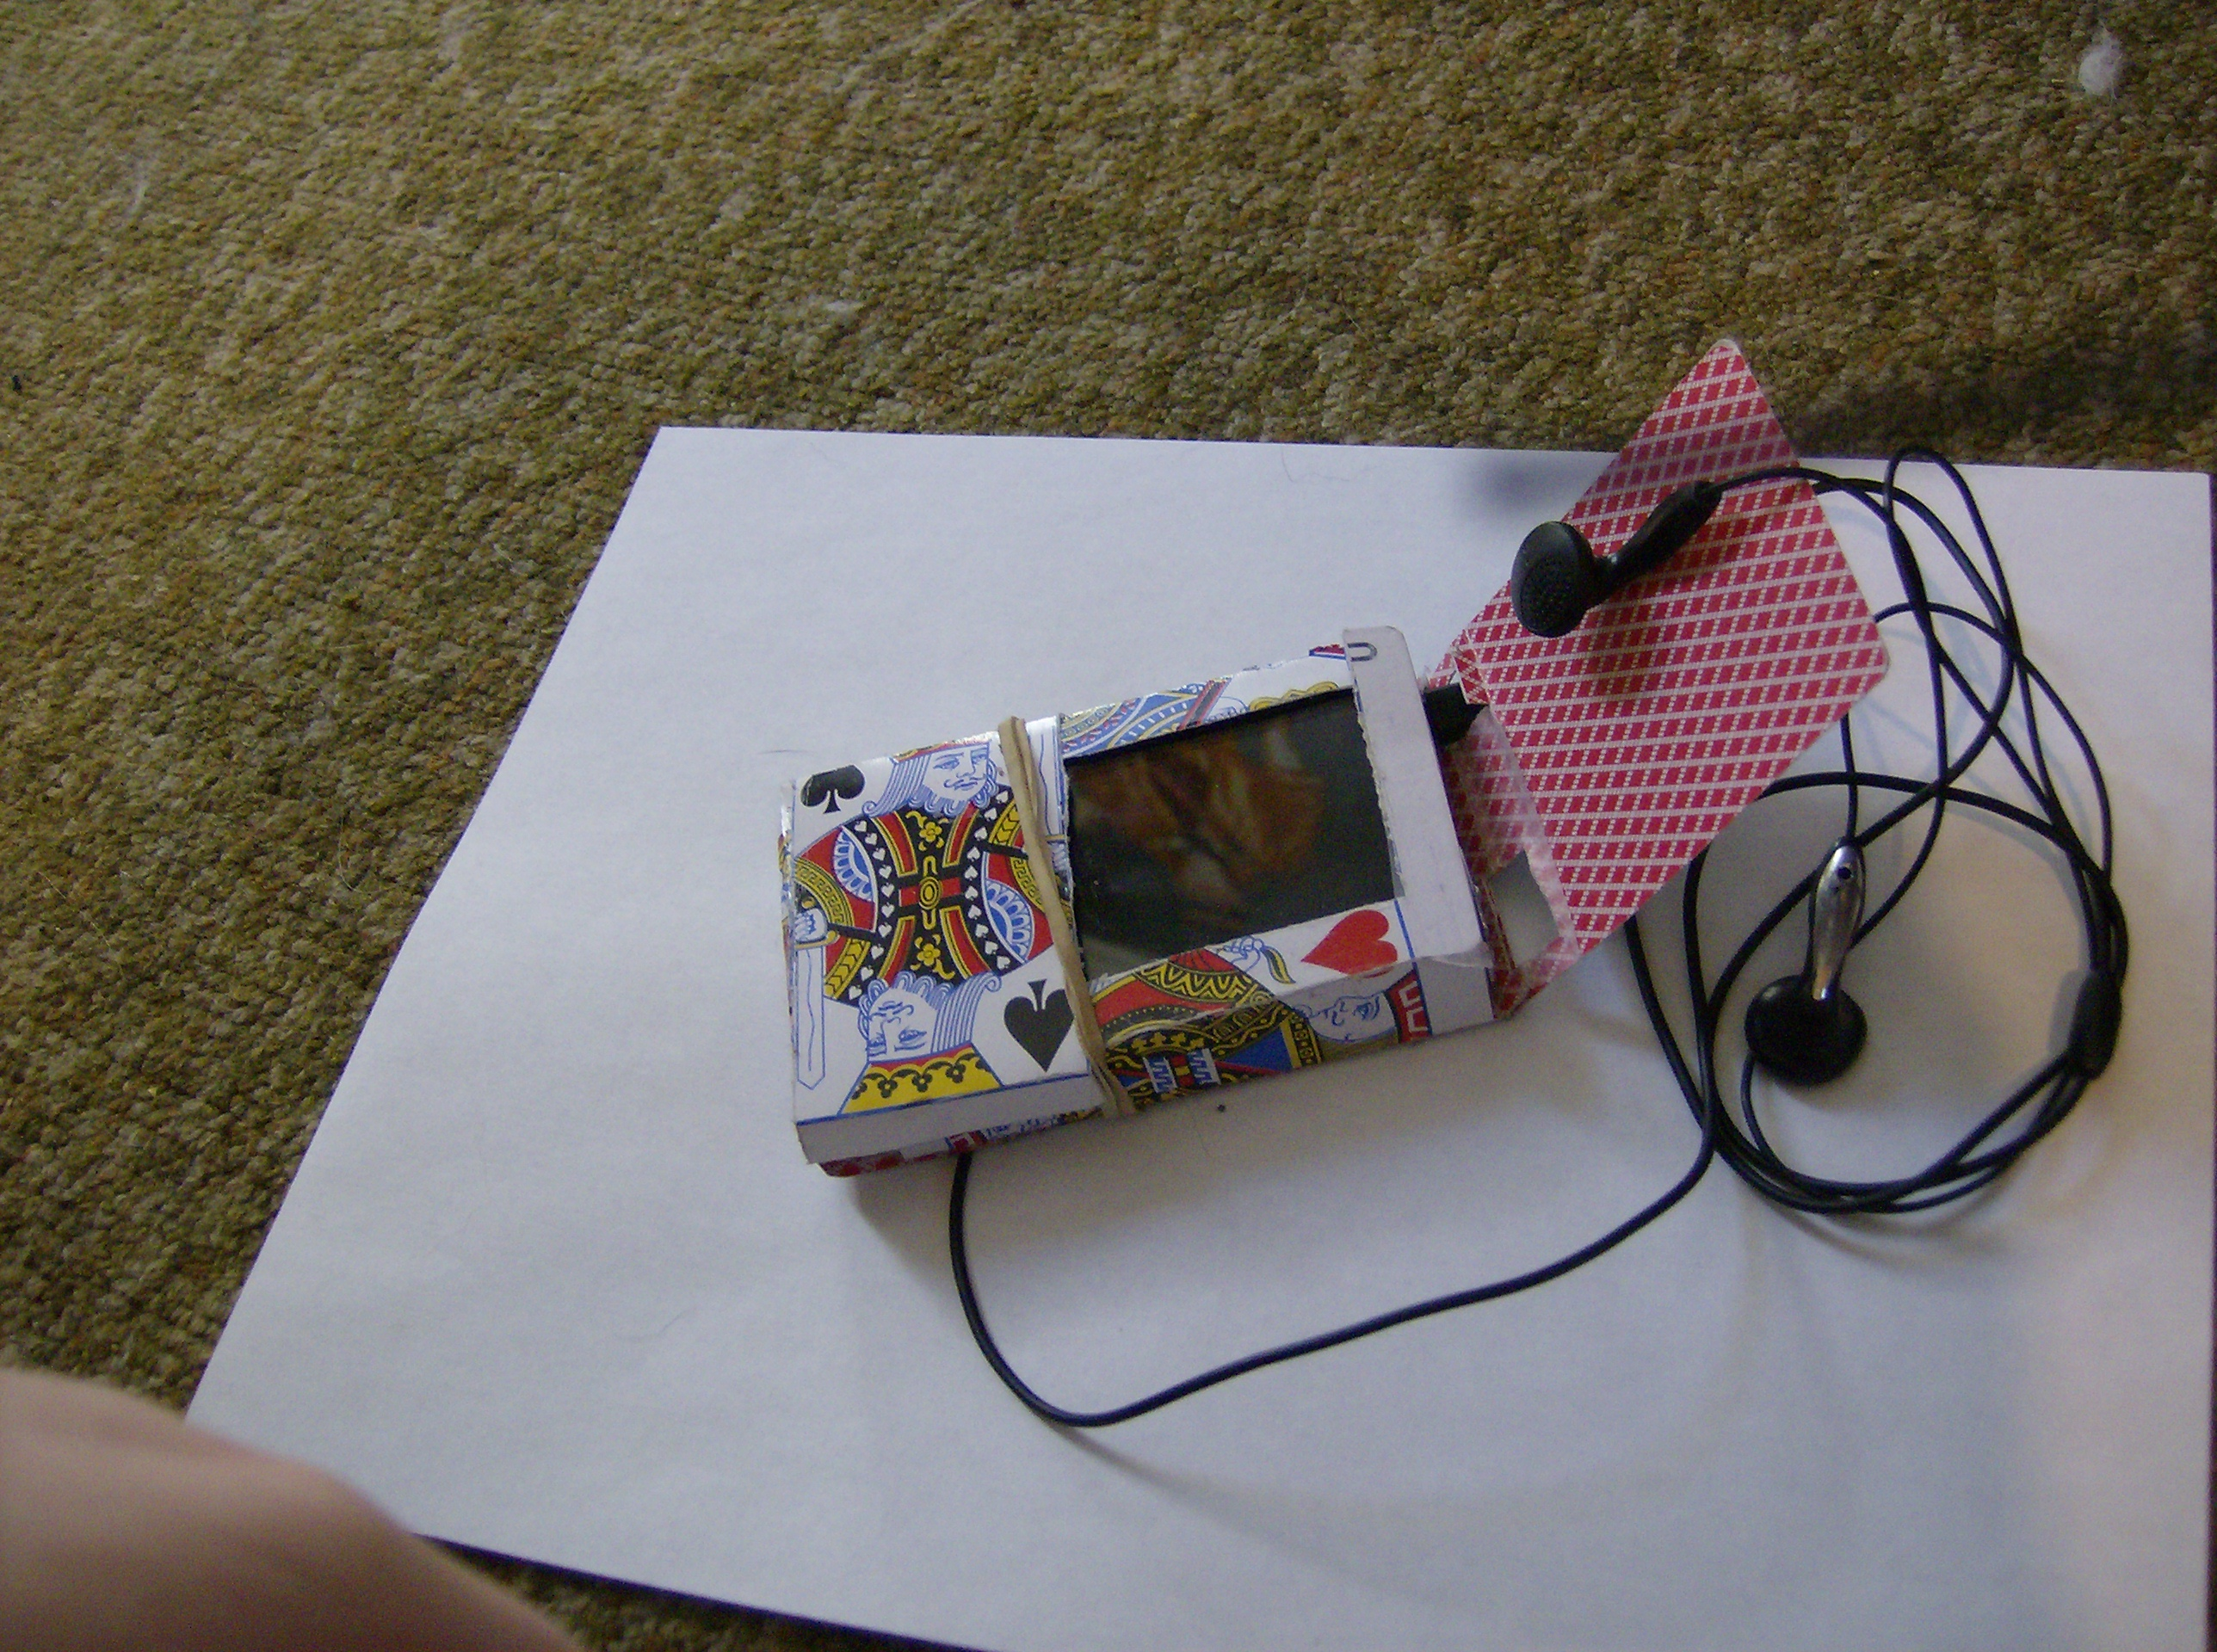 Design and Build an MP3 Player Case with Playing Cards